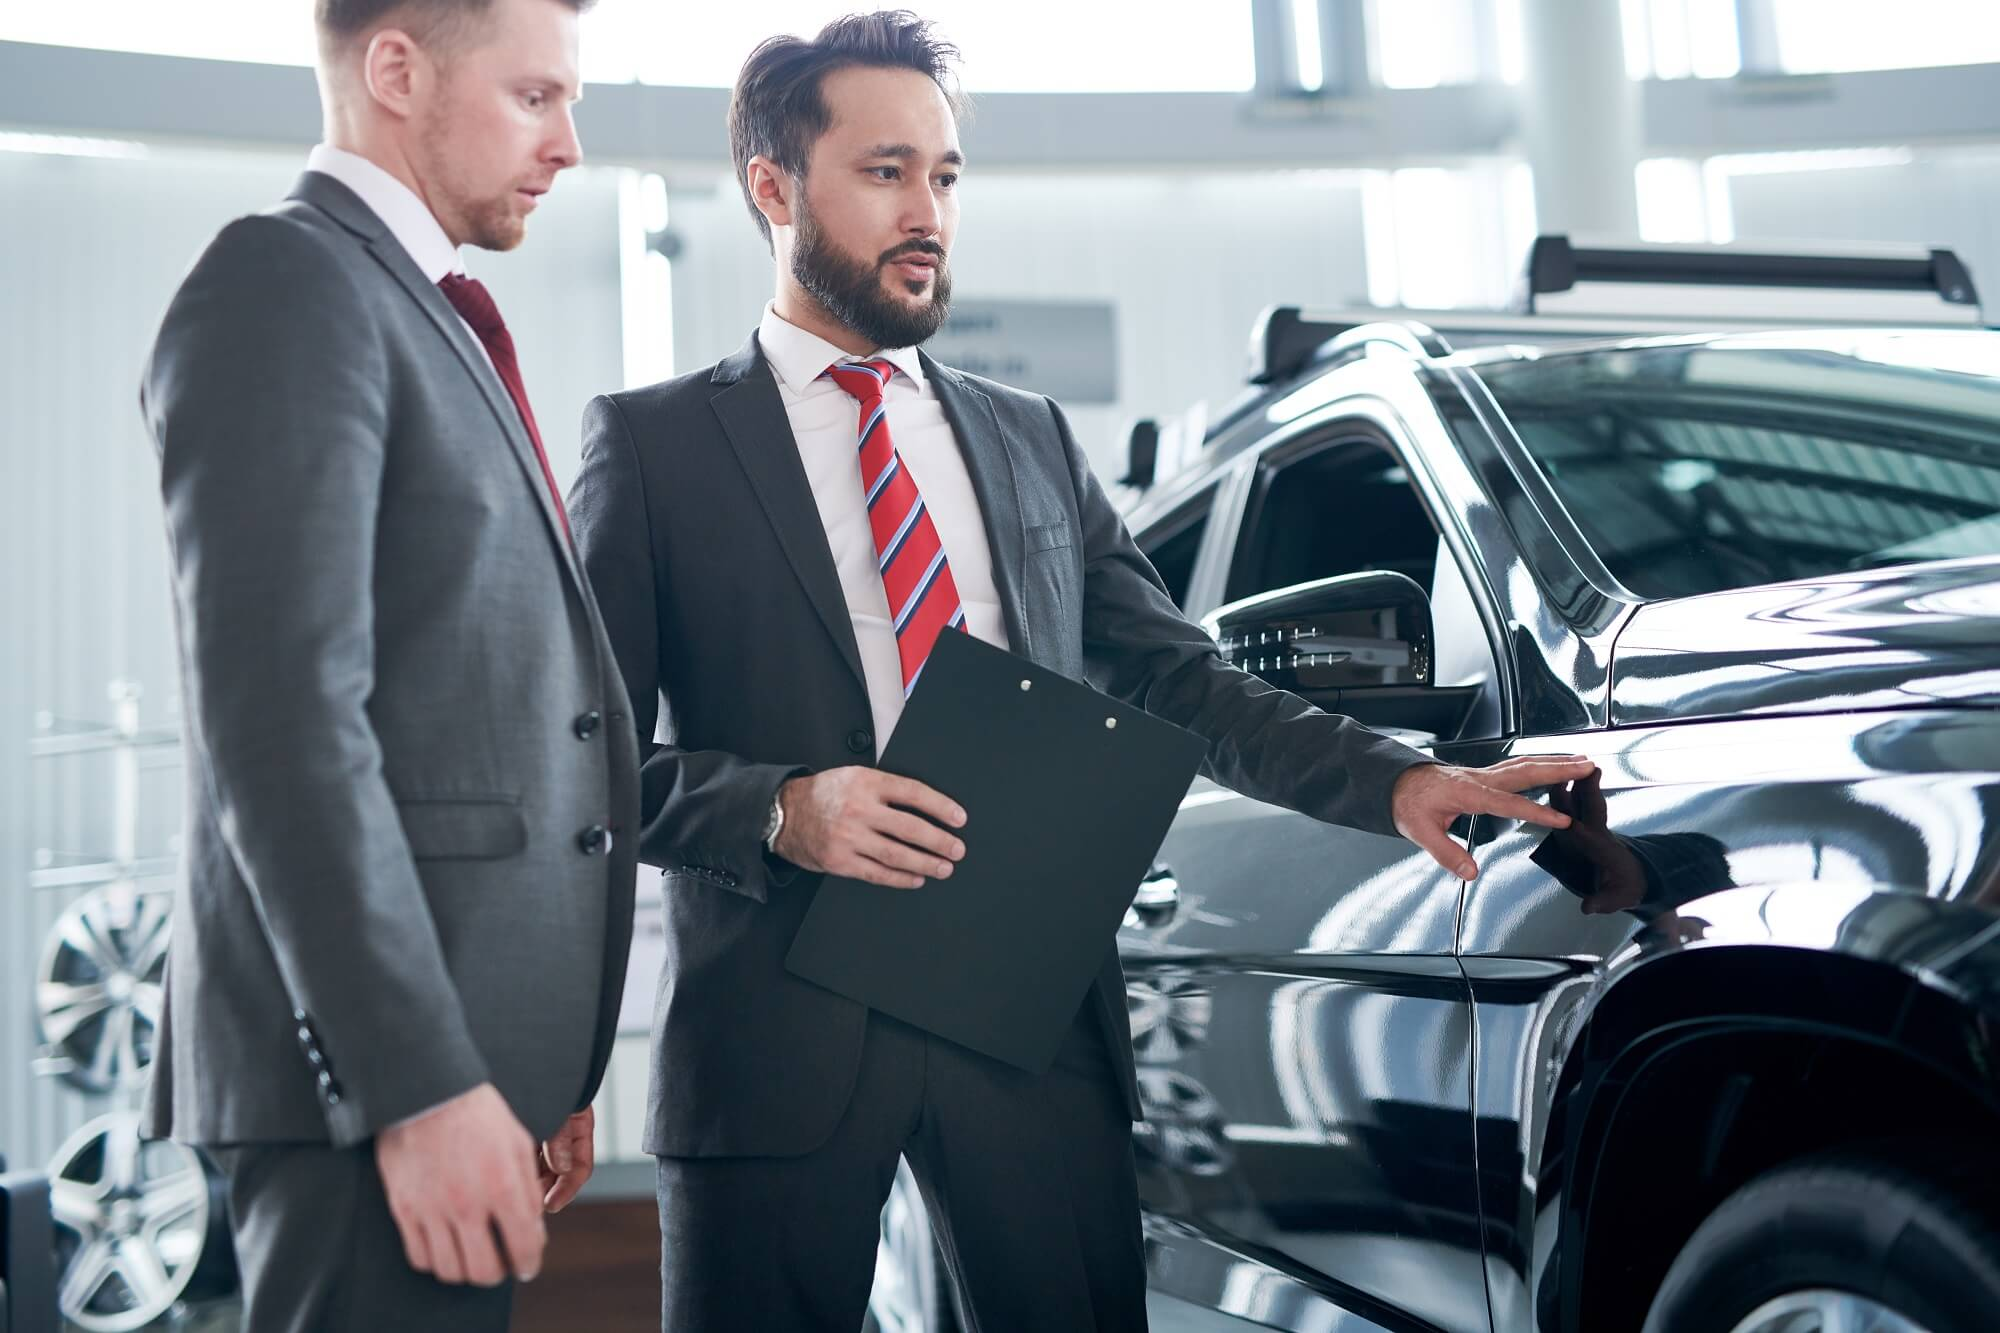 Professional sales person showing car to customer